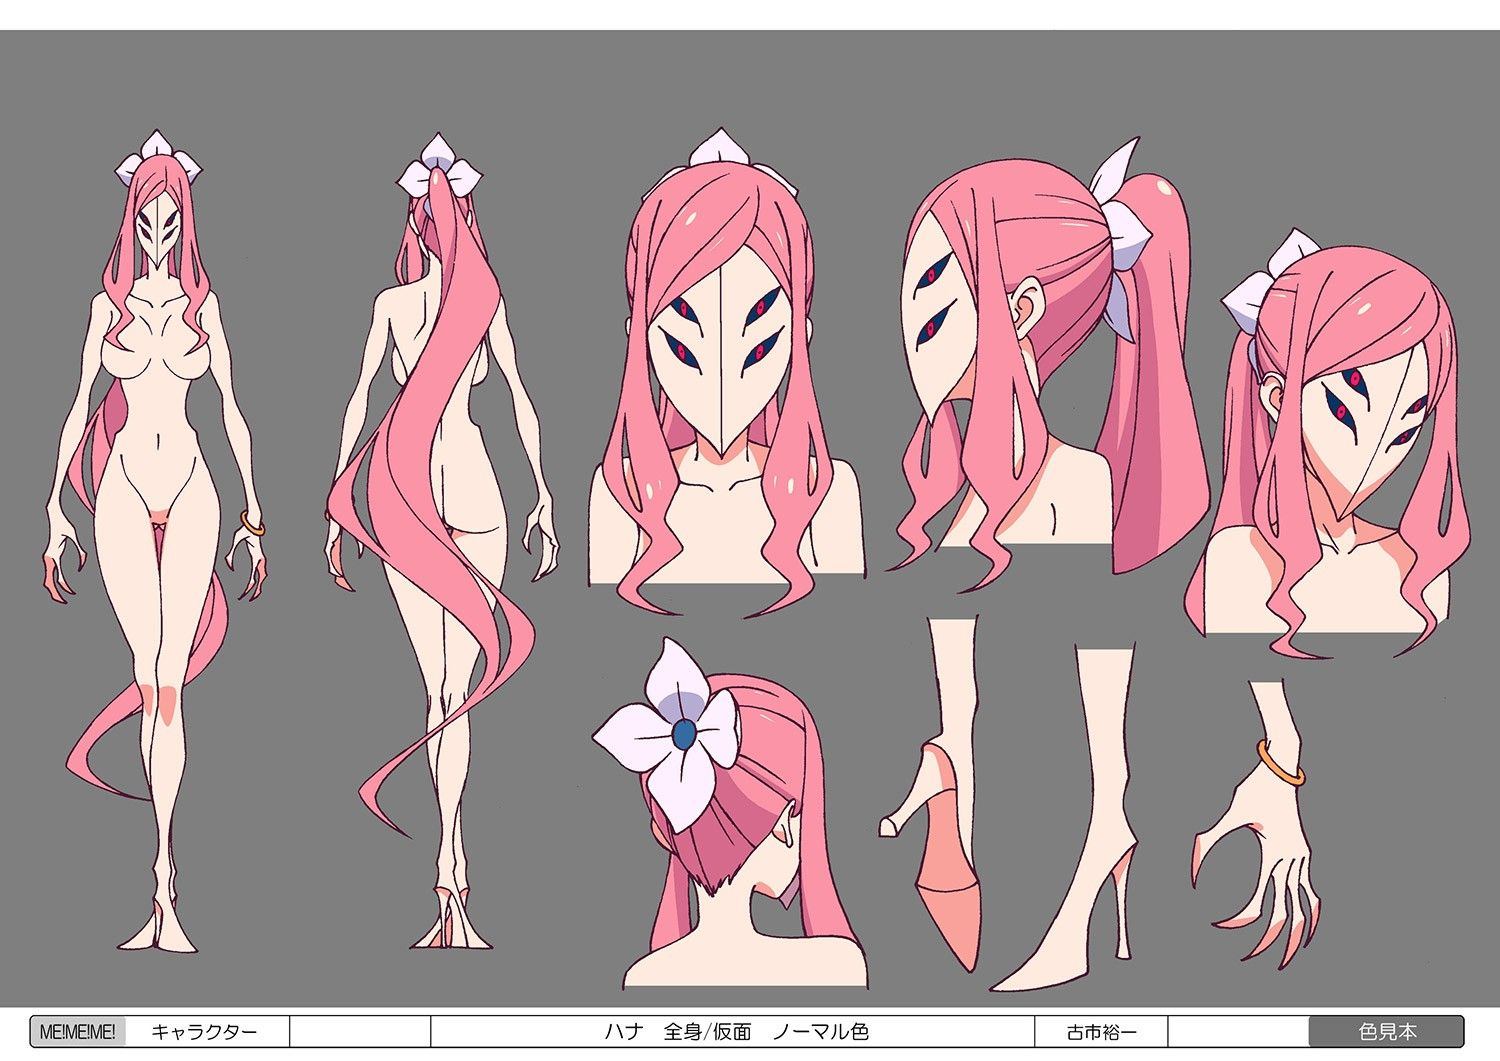 ★ || CHARACTER DESIGN REFERENCES™ (https://www.facebook.com/CharacterDesignReferences & https://www.pinterest.com/characterdesigh) • Love Character Design? Join the #CDChallenge (link→ https://www.facebook.com/groups/CharacterDesignChallenge) Share your unique vision of a theme, promote your art in a community of over 50.000 artists! || ★